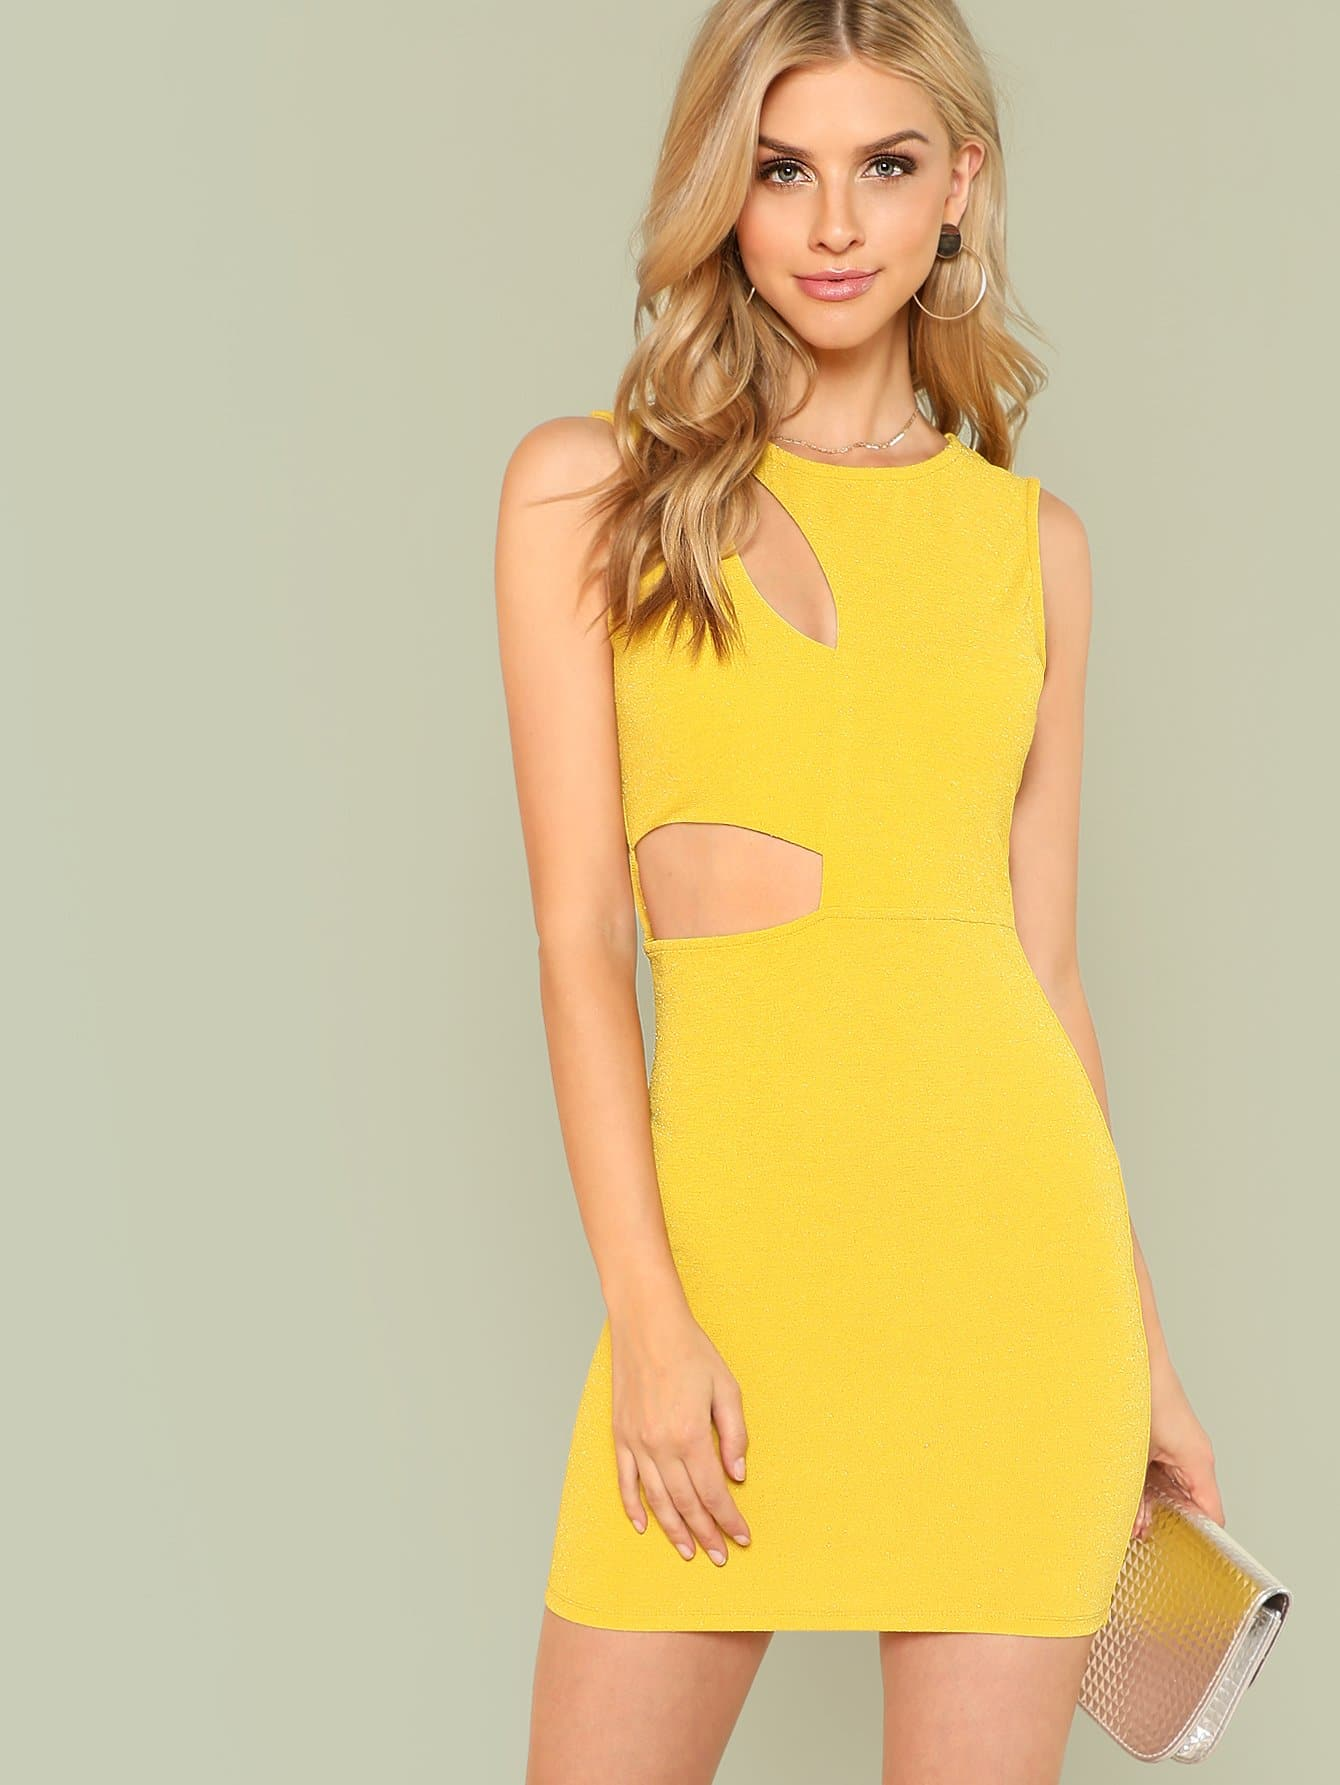 Cut Out Detail Glitter Dress cut out detail fit and flared sleeveless dress